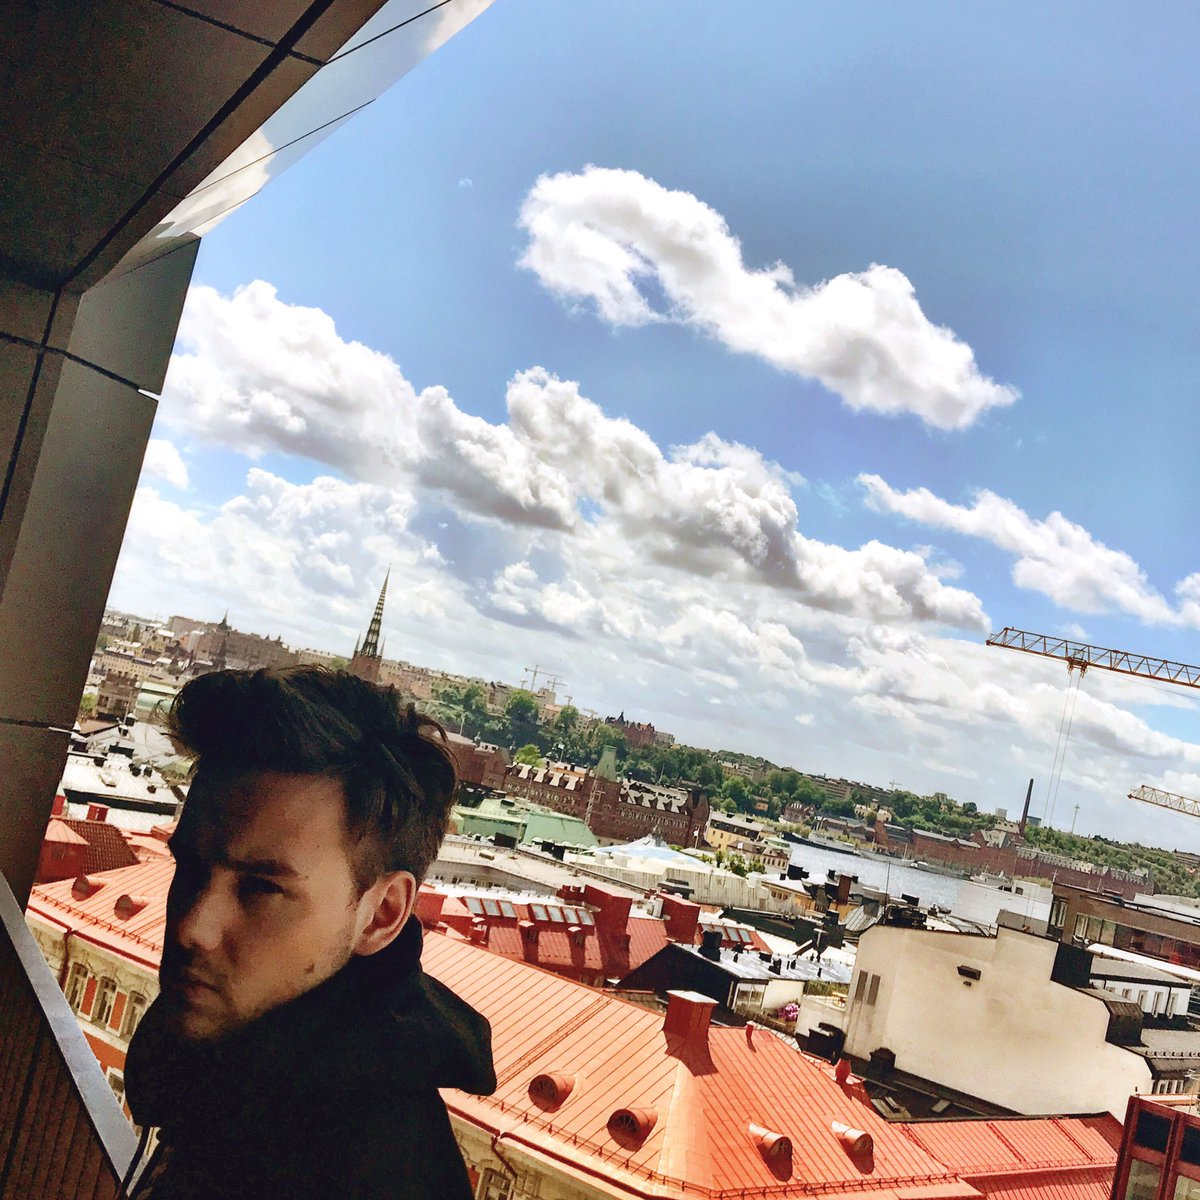 Love coming back to Sweden. Such a beautiful place and so many memories 🇸🇪